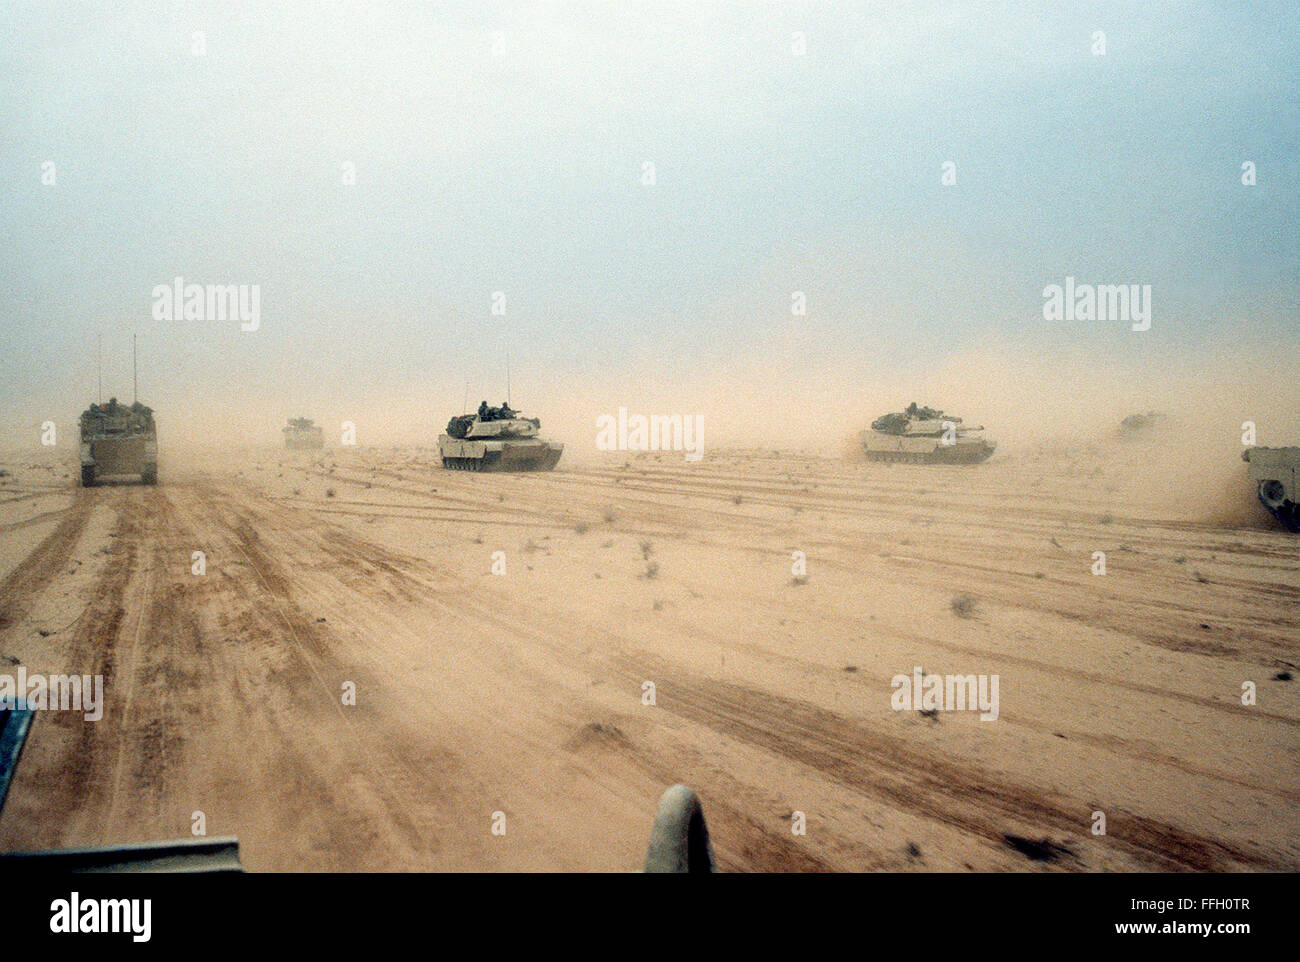 M-1A1 Abrams main battle tanks   of the 3rd Brigade, 1st Armored Division, 7th Corps move across the desert in northern - Stock Image